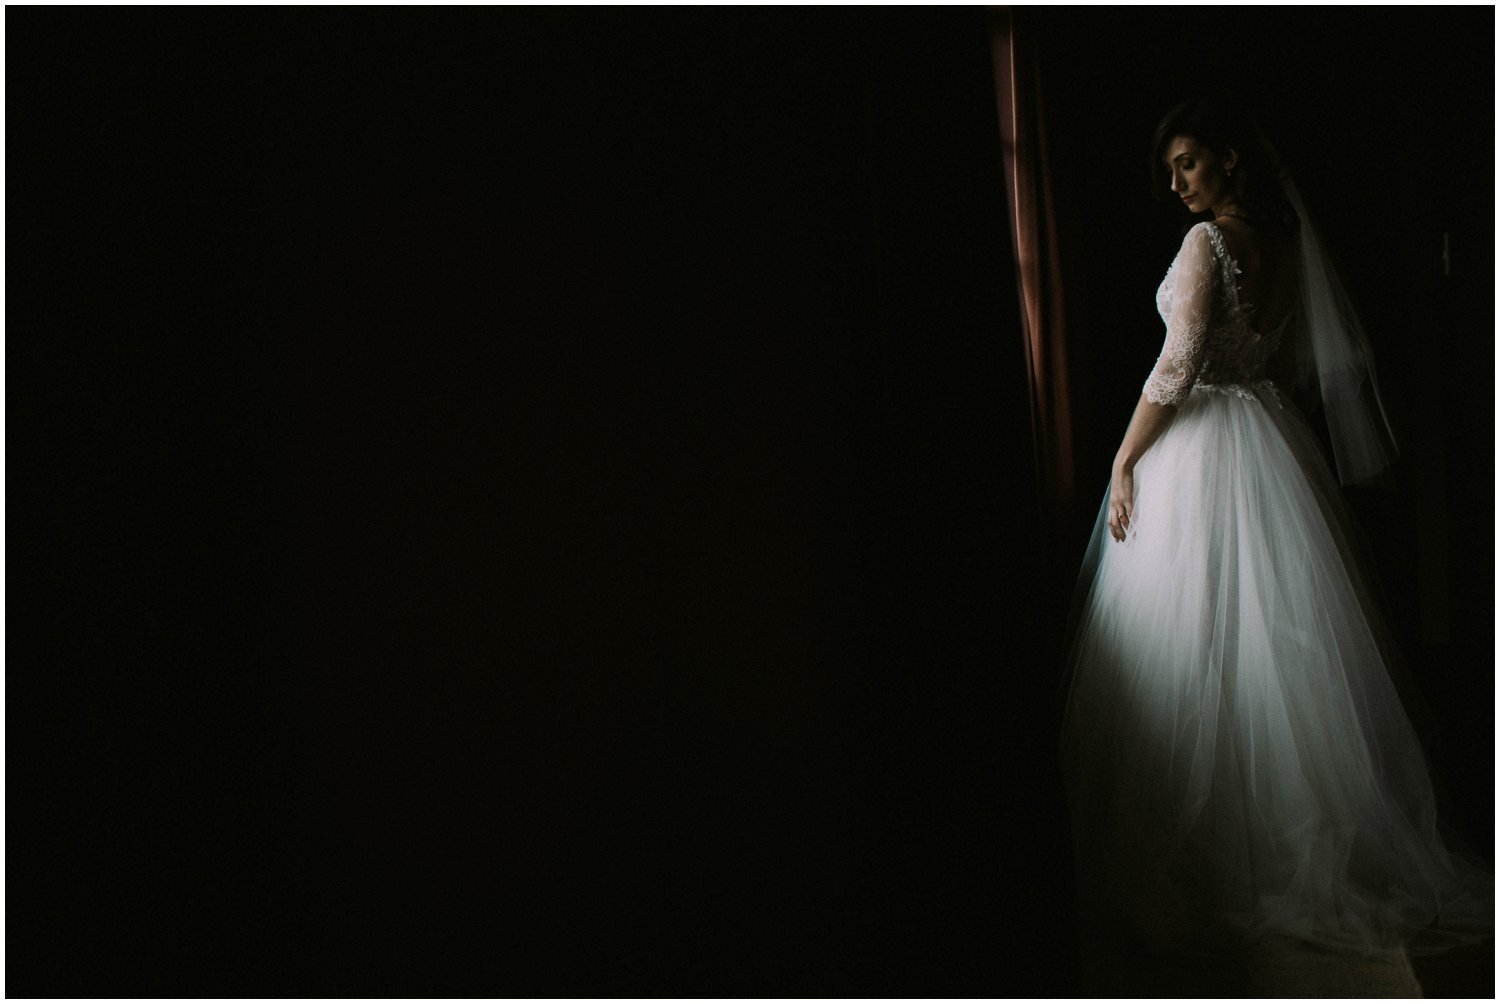 Top Wedding Photographer Cape Town South Africa Artistic Creative Documentary Wedding Photography Rue Kruger_1328.jpg